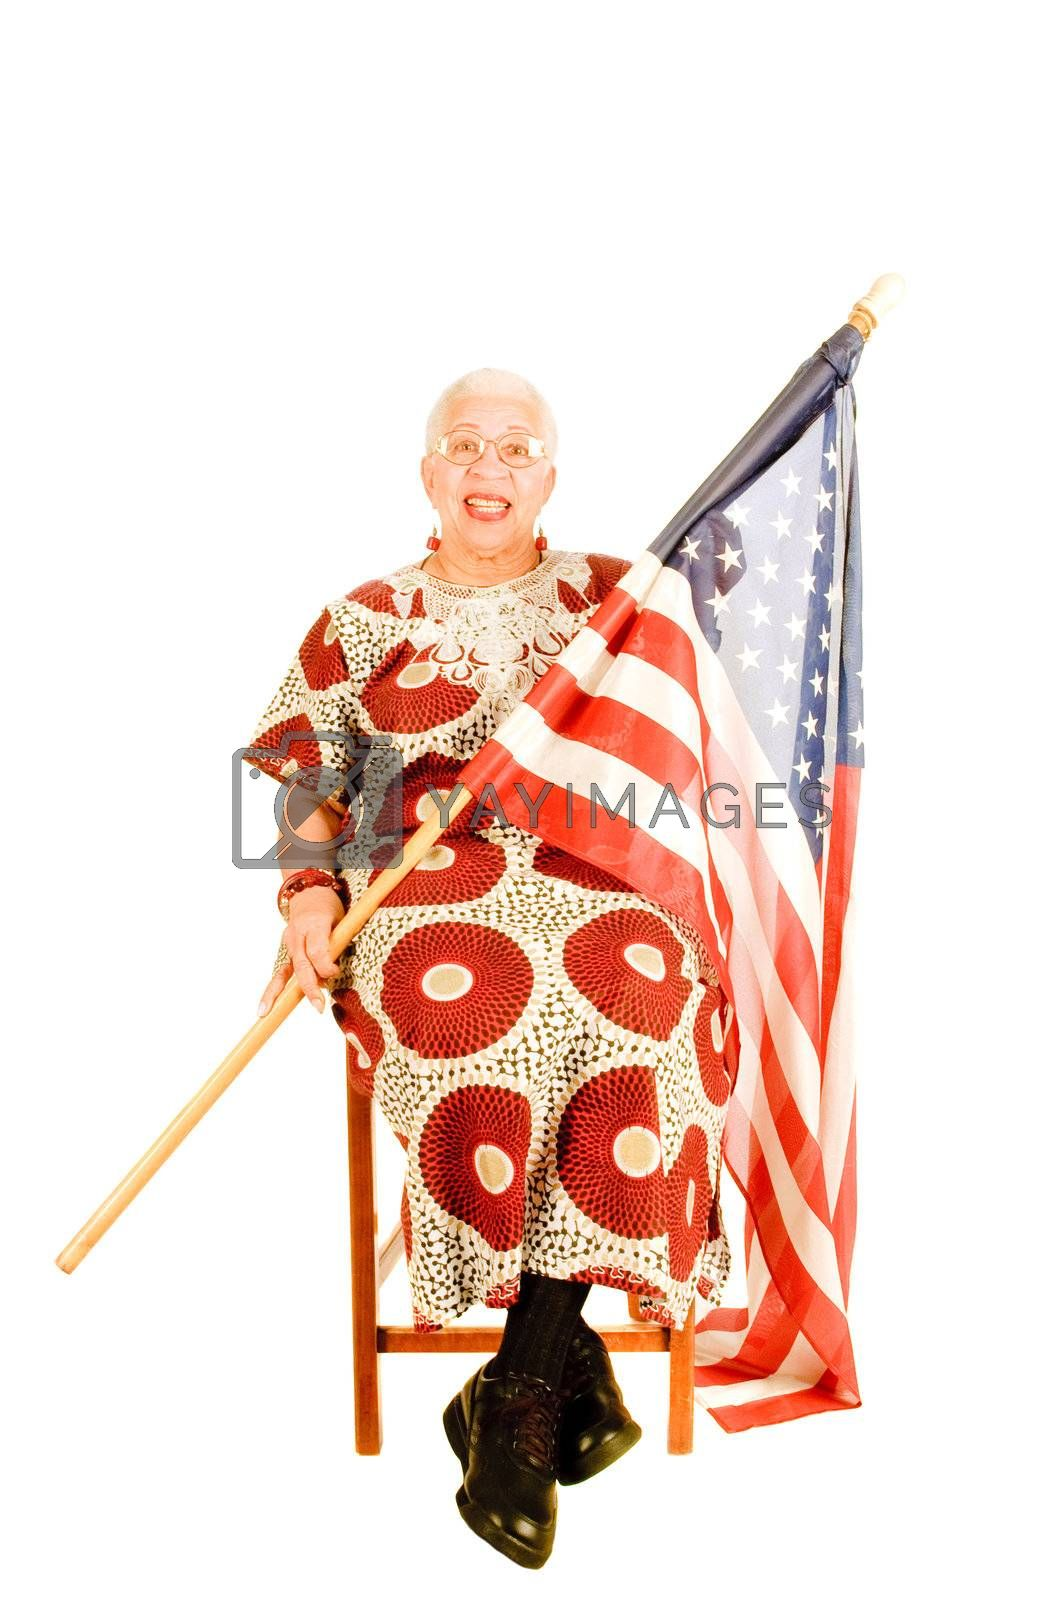 elderly patriot sitting with flag draped across her for a labor day or 4th of July celebration, isoalted on white